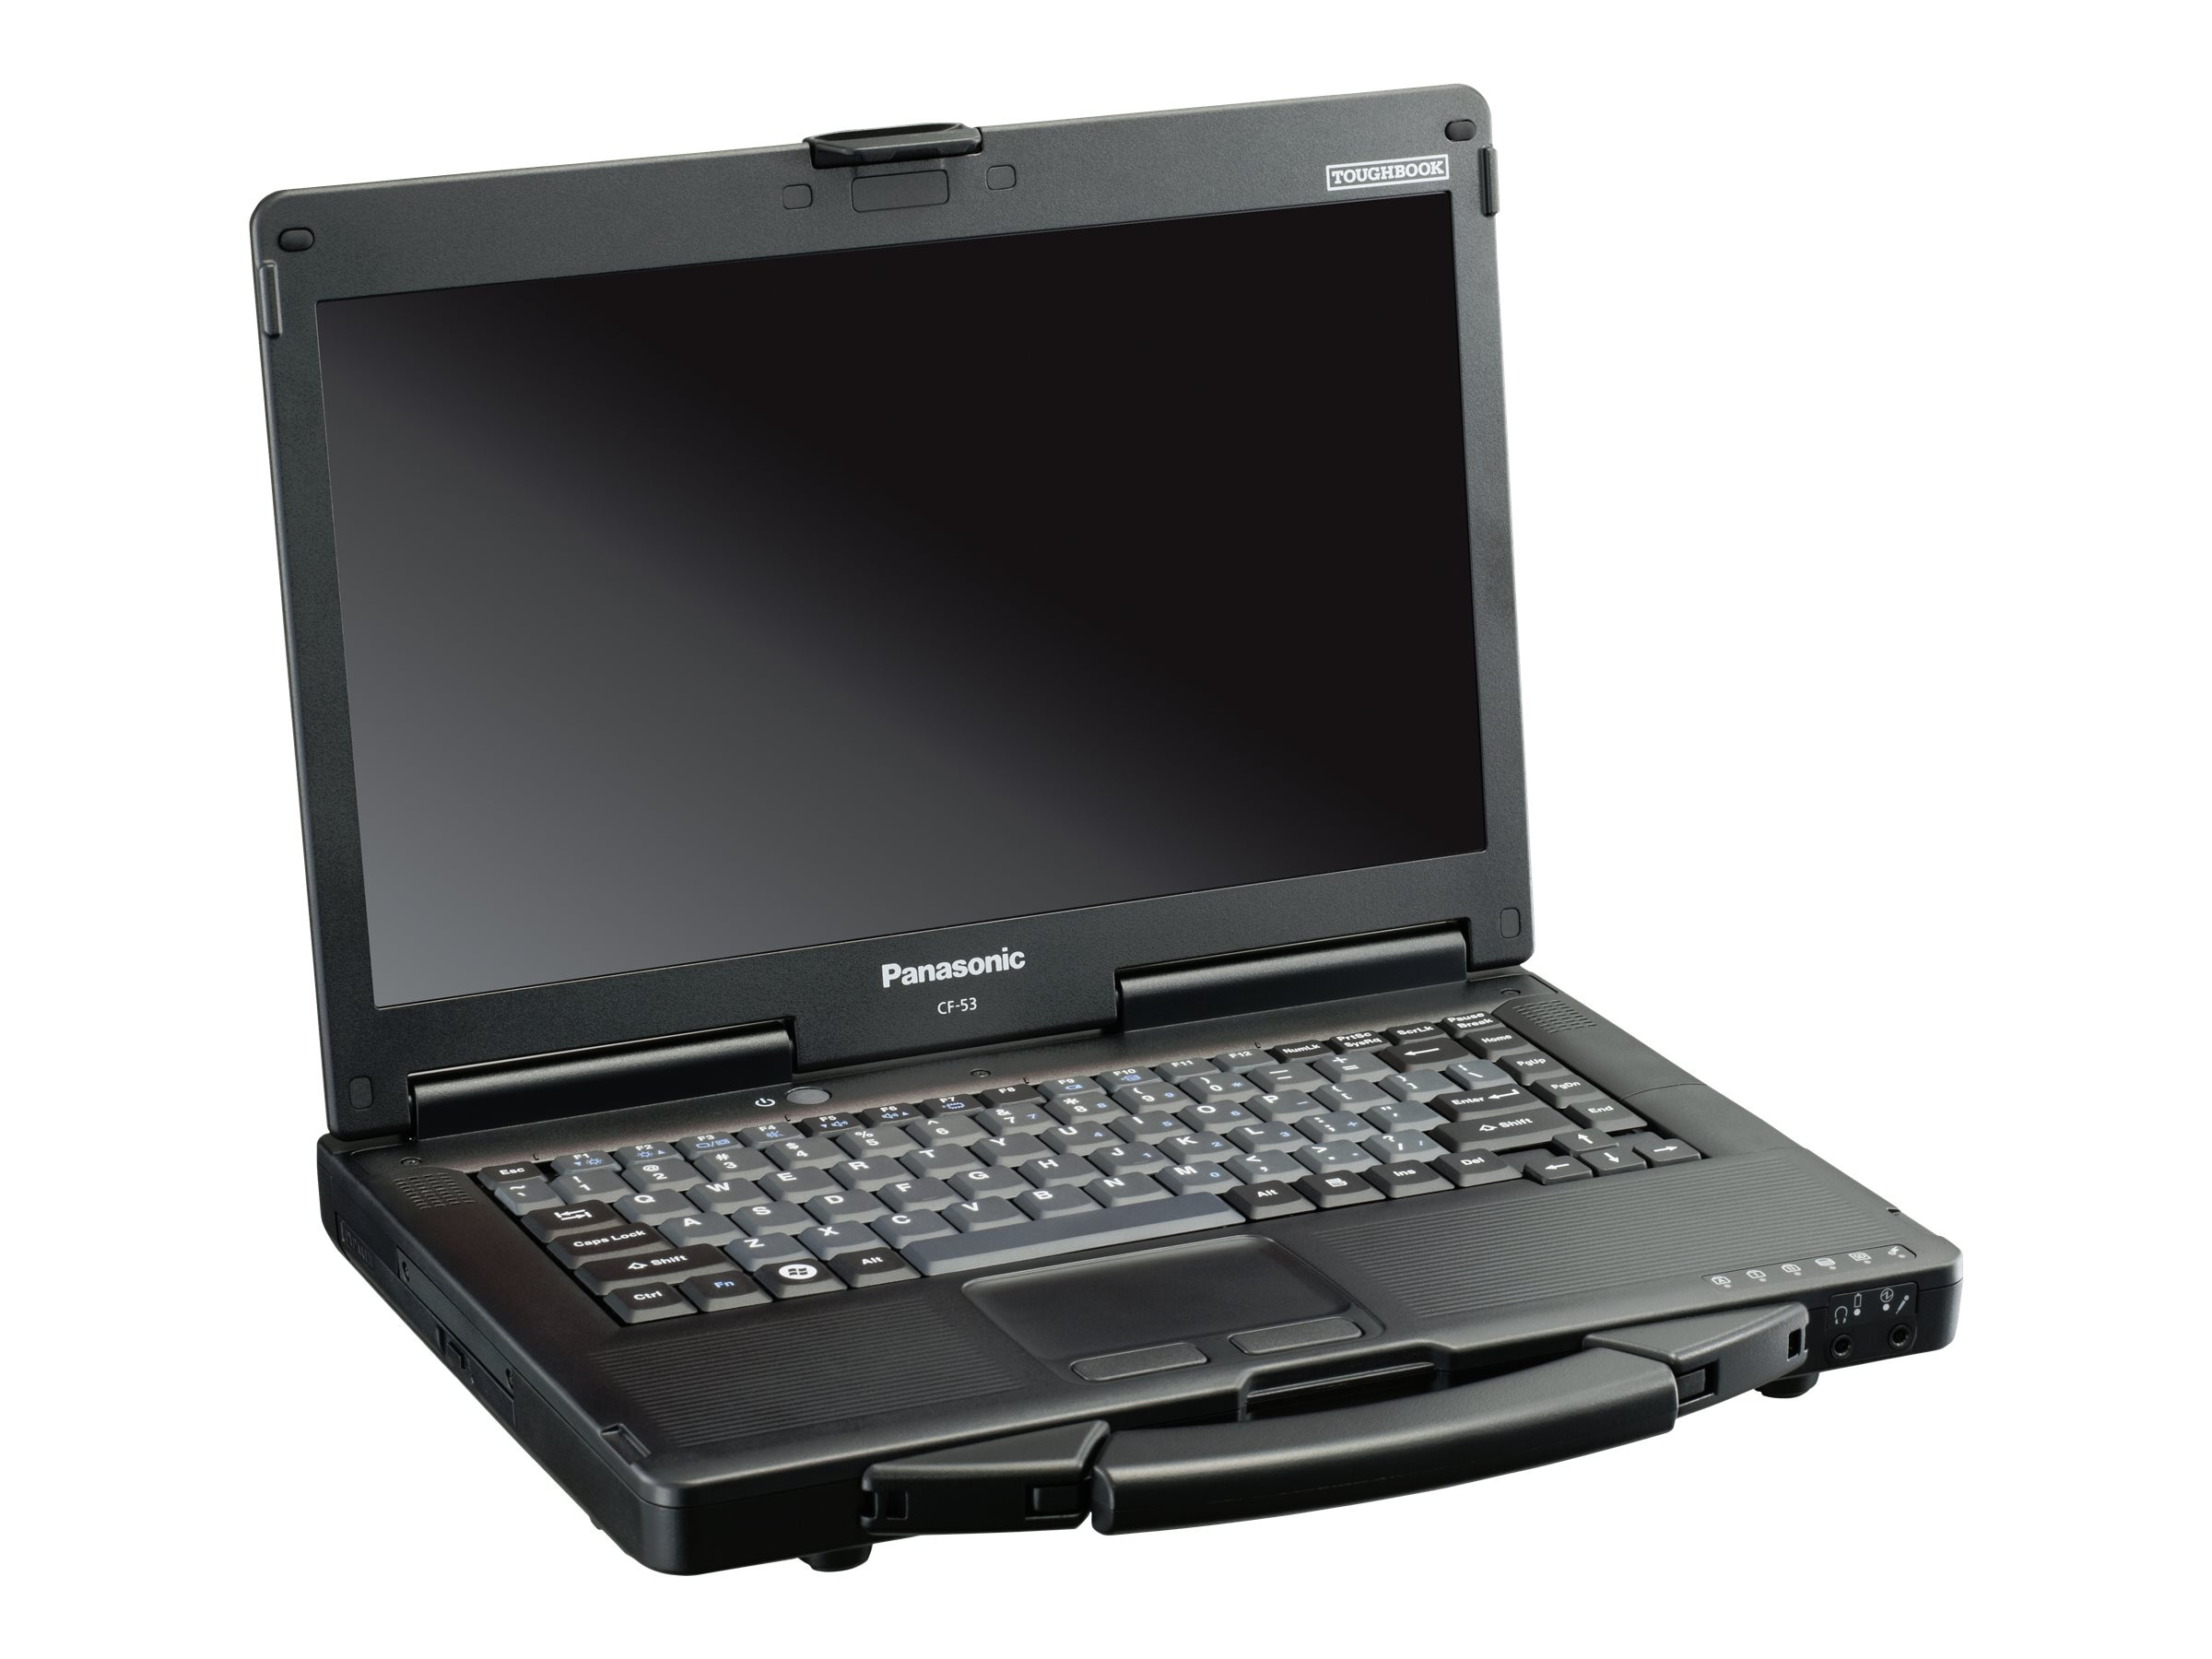 Panasonic CF-532SLC8NM Image 3